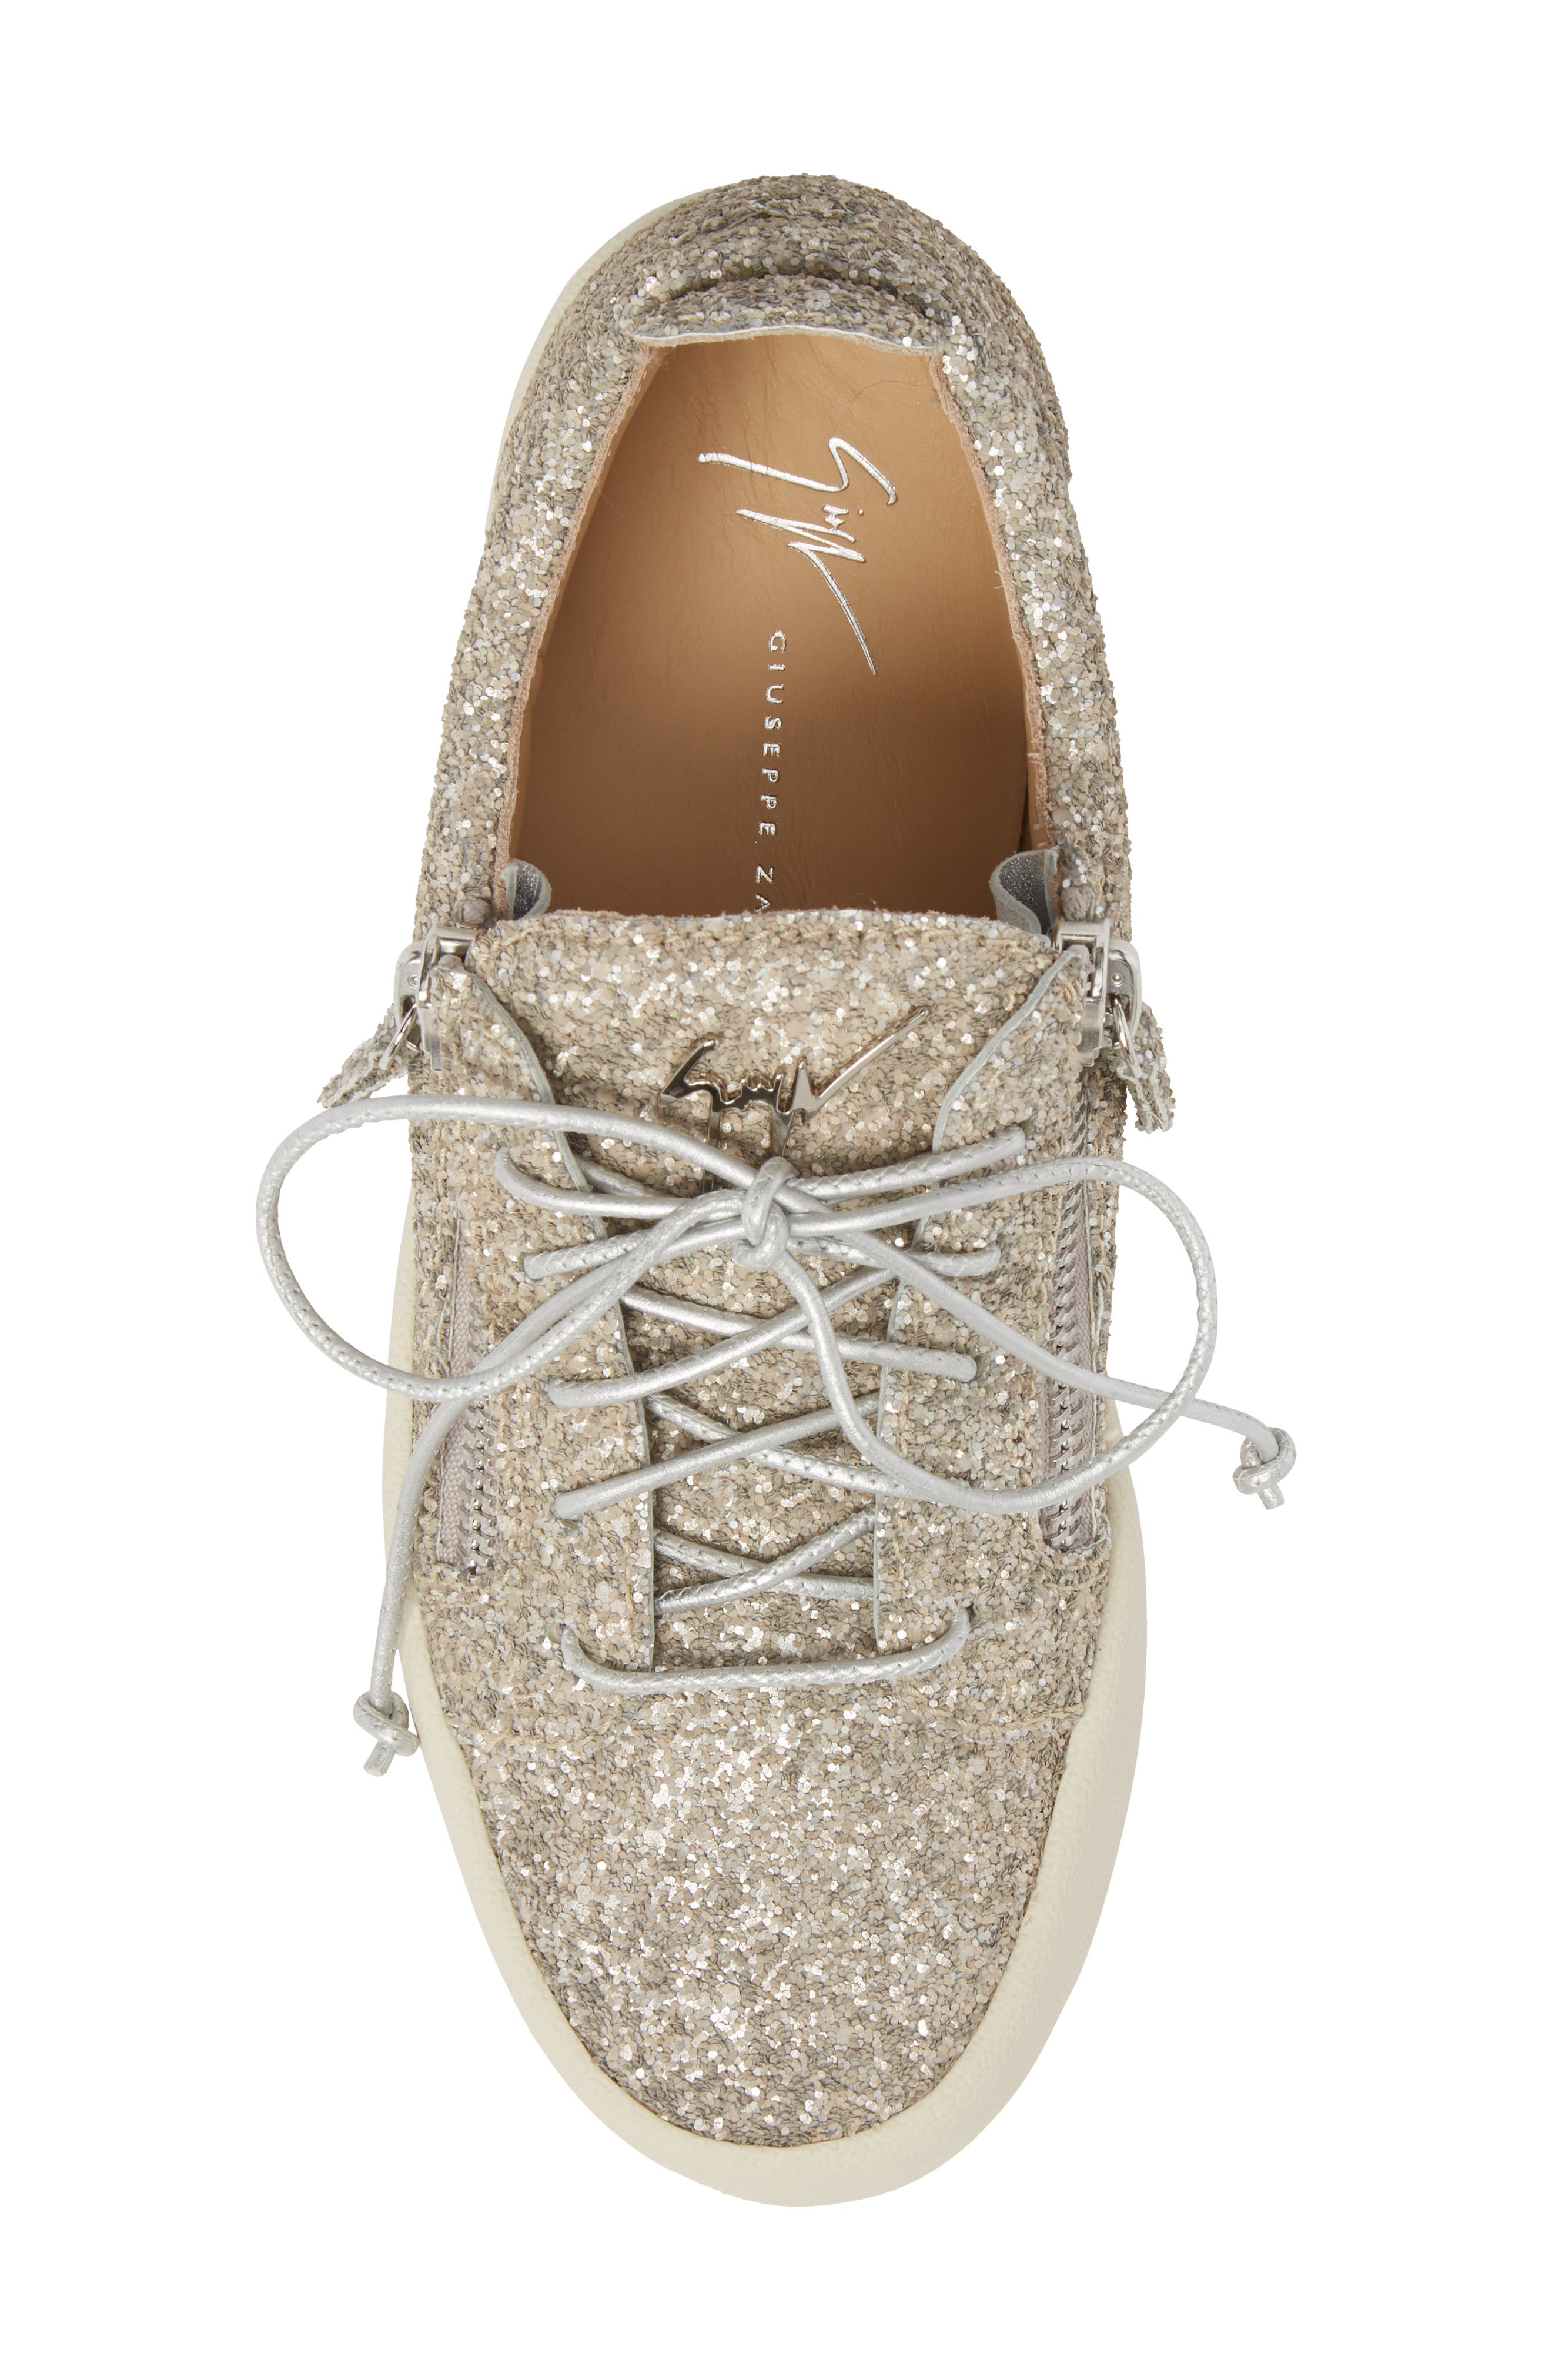 May London Low Top Sneaker,                             Alternate thumbnail 5, color,                             Champagne